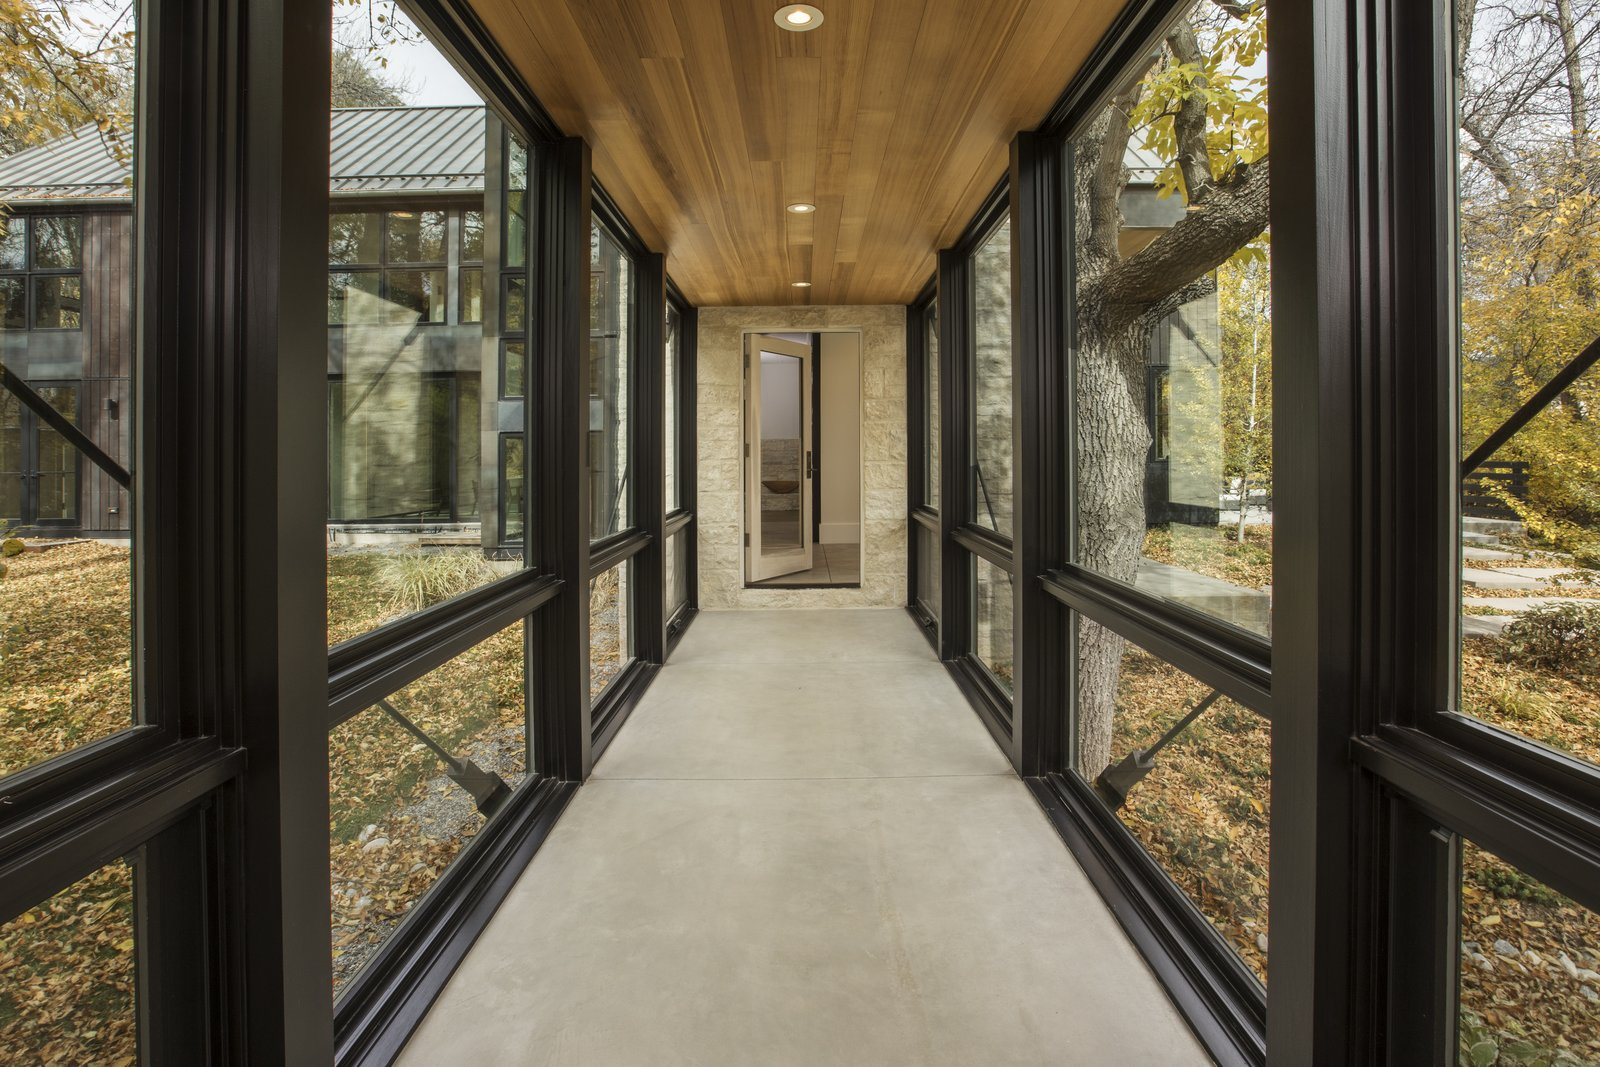 A fully glazed corridor allows the owner to enjoy the autumn foliage outdoors.